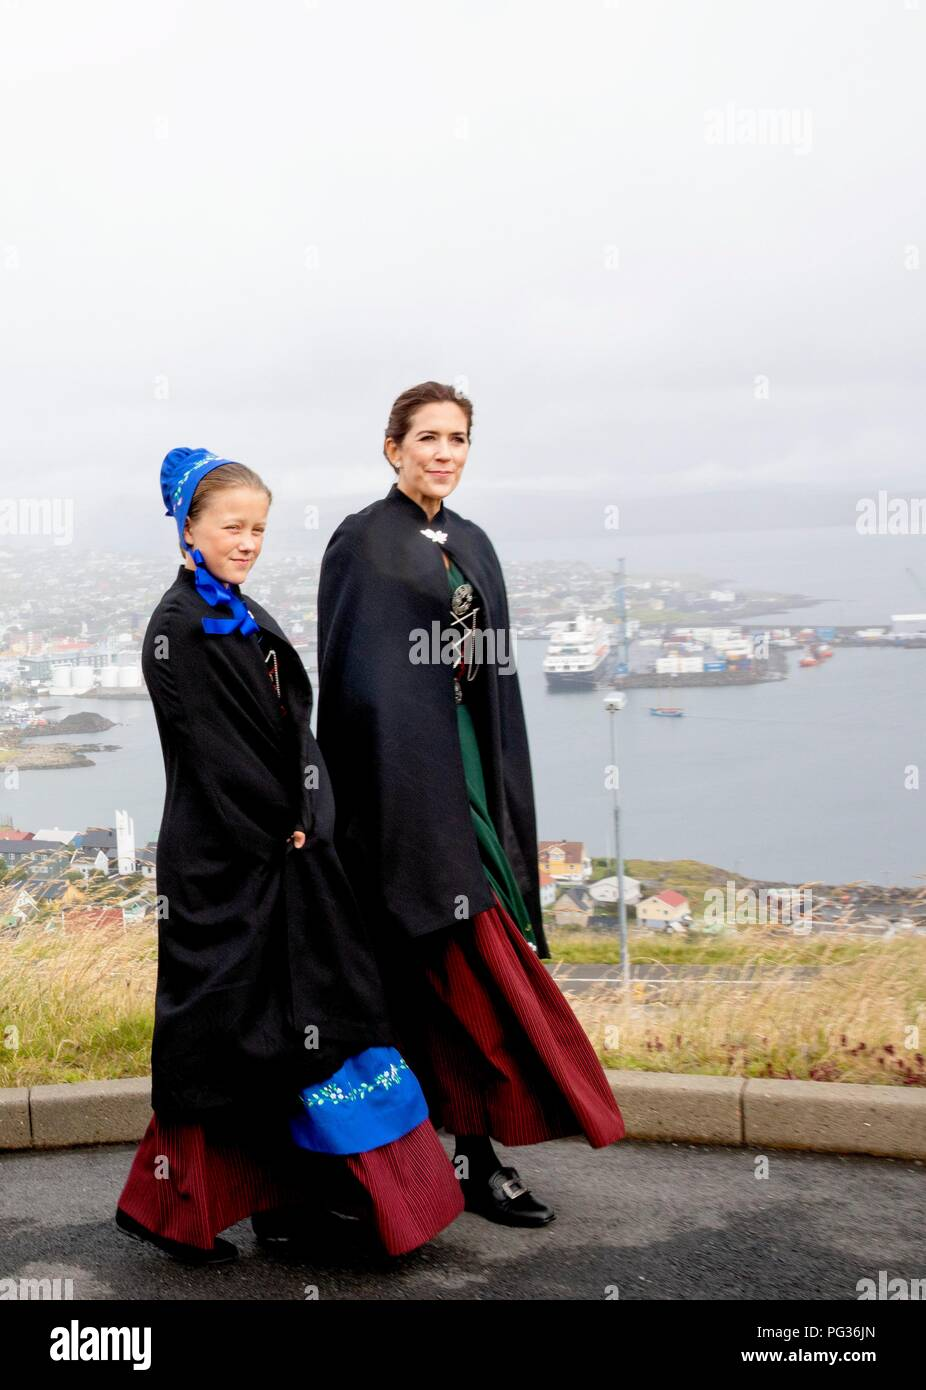 Torshavn, Faroe Islands, Denmark. 23rd Aug, 2018. Crown Princess Mary and Princess Isabella of Denmark arrive with the The Royal Ship, HDMY Dannebrog at Bursatangi, on August 23, 2018, on the 1st of the 4 days visit to the Faroe Islands Photo : Albert Nieboer/ Netherlands OUT/Point de Vue OUT | Credit: dpa/Alamy Live News - Stock Image